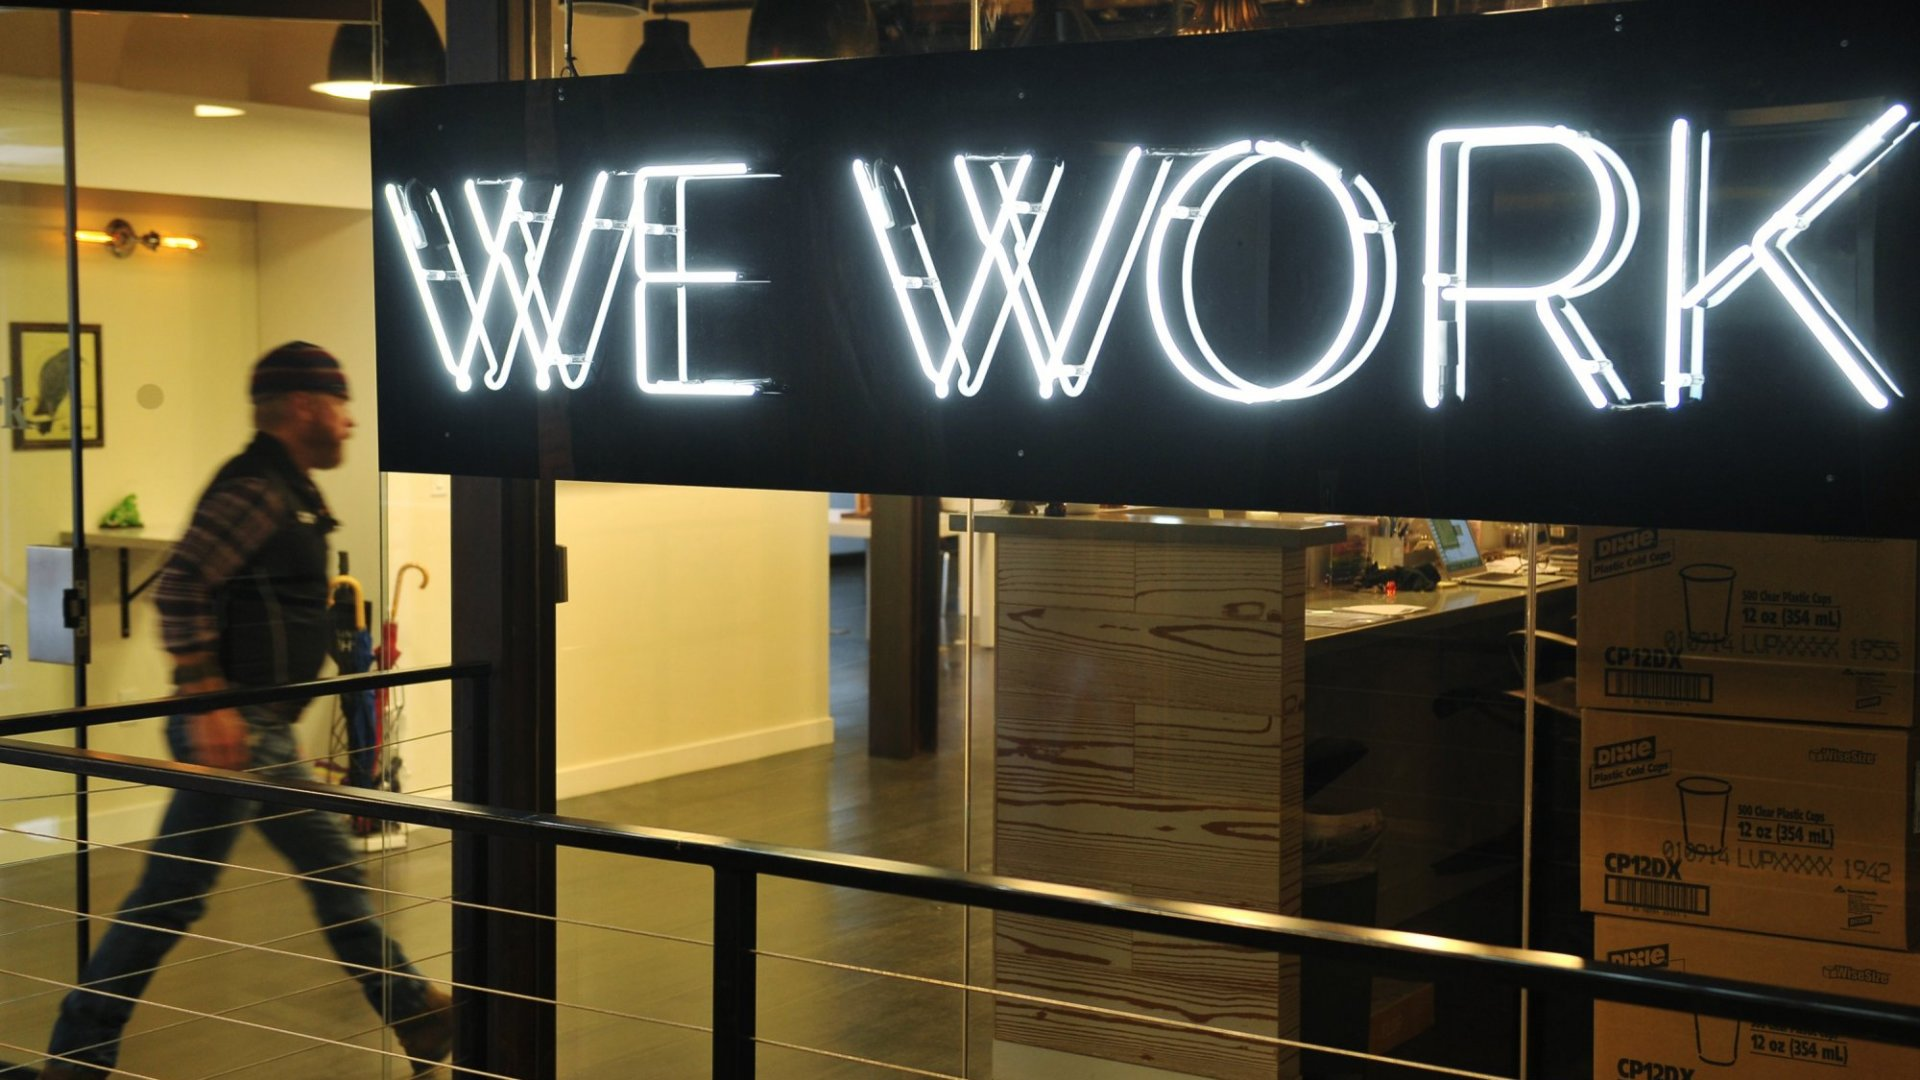 WeWork Filed for an IPO and Reported a Loss of $1.8B in 2018--but One Sentence From the CEO's Letter to Employees Stood Out